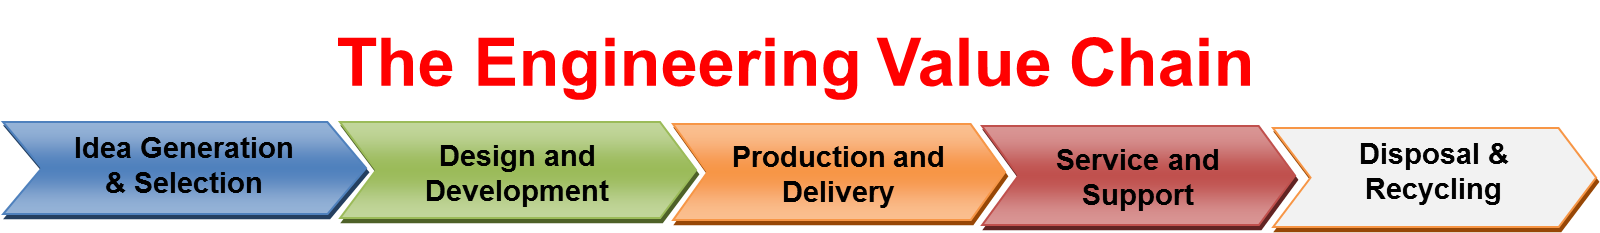 Engineering Design Services Meaning